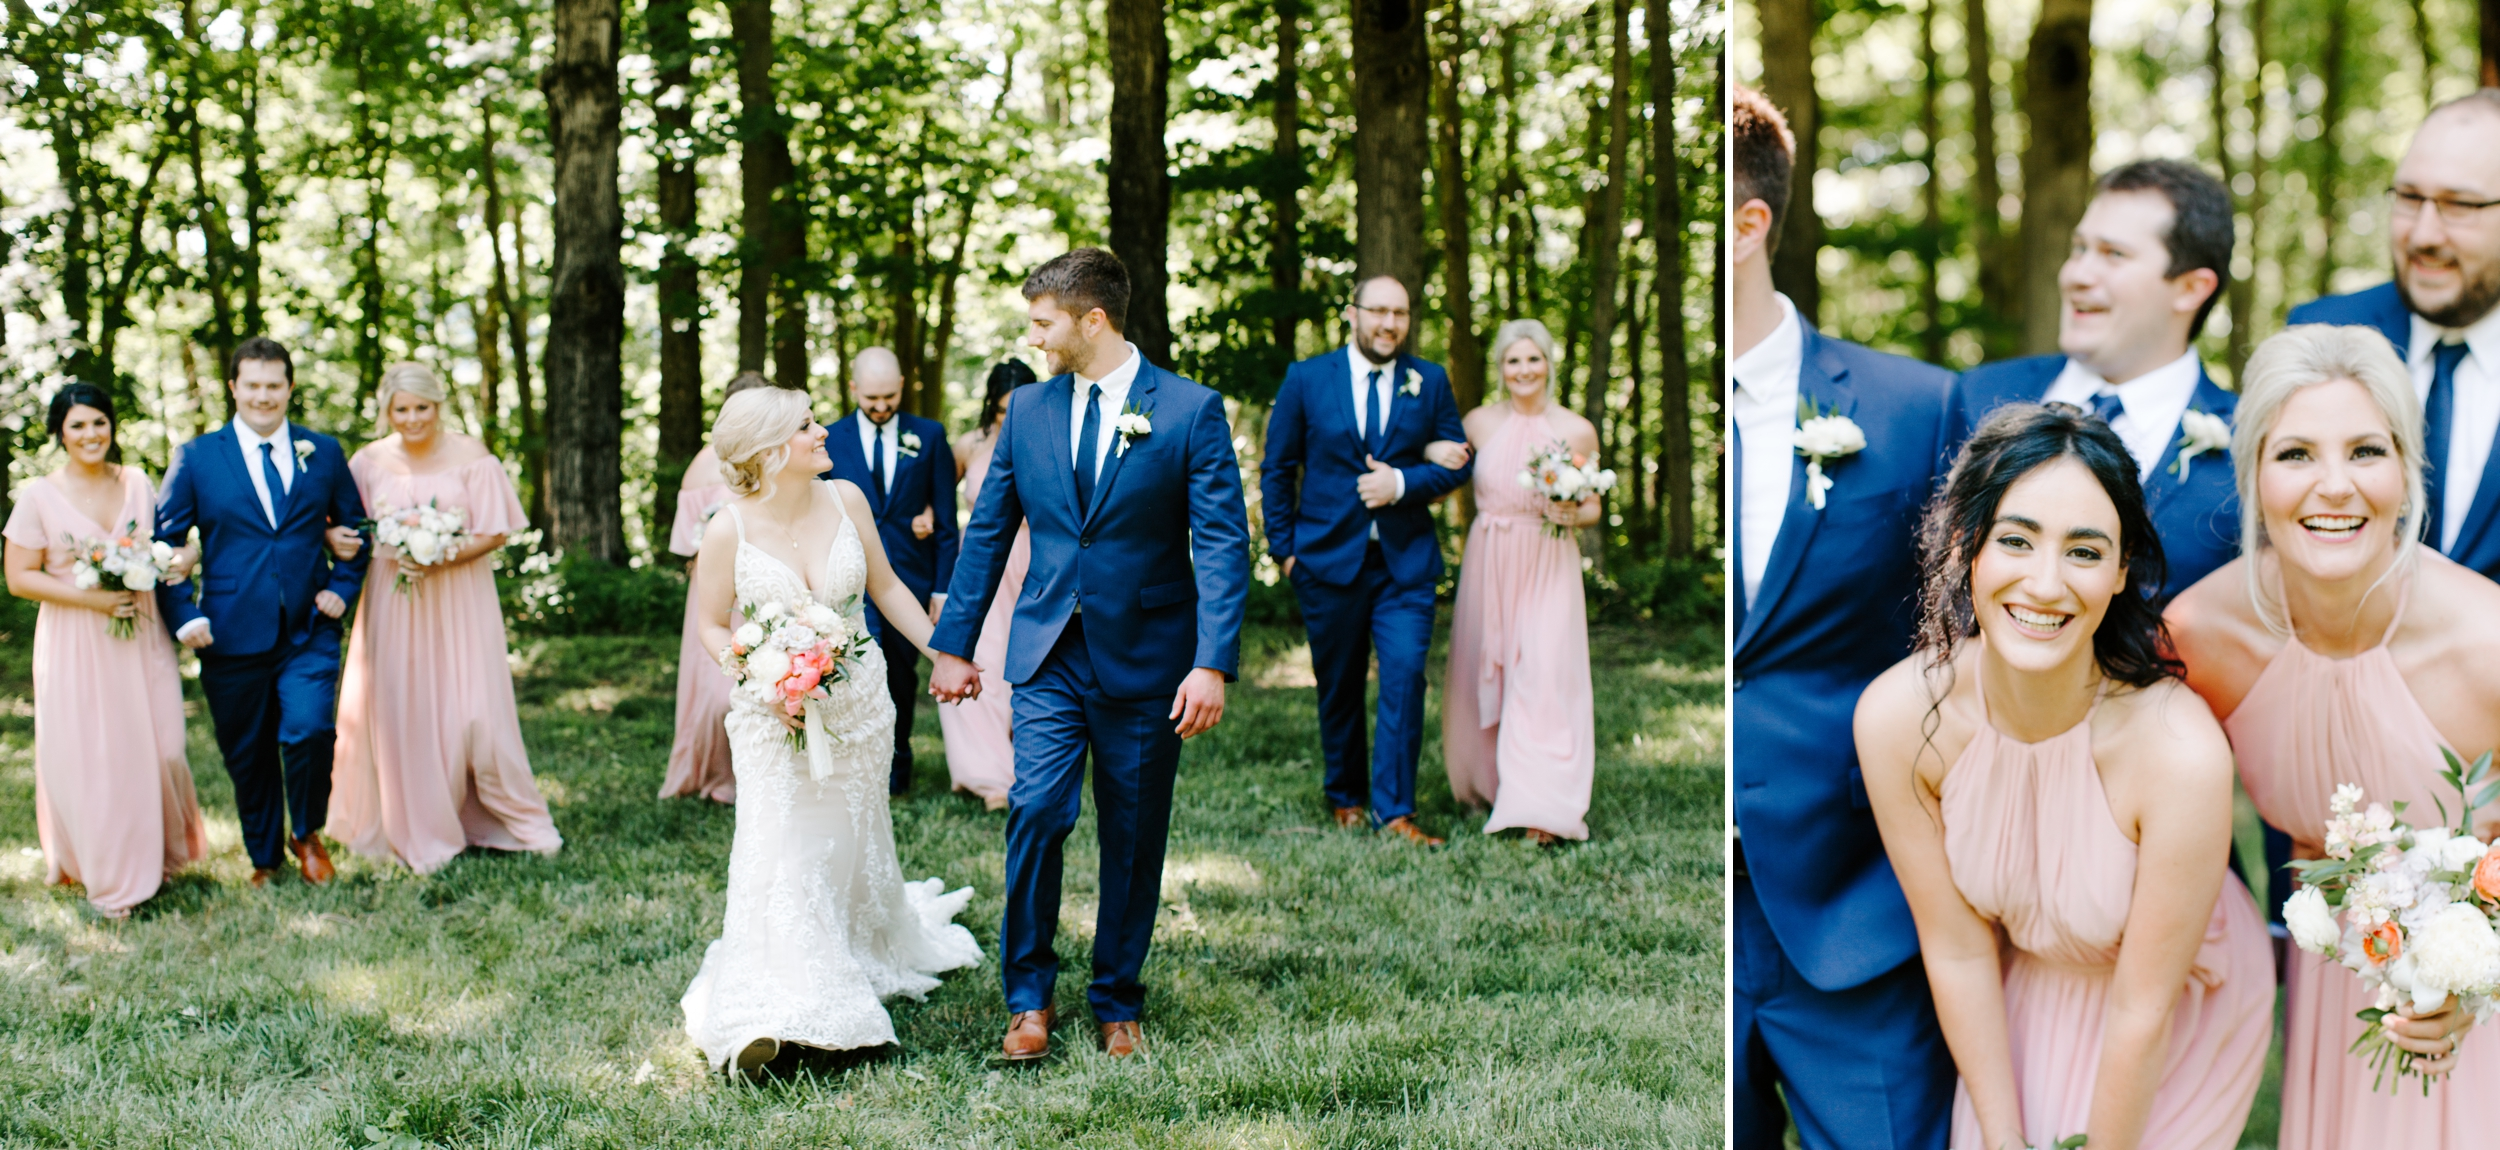 wedding-party-bridesmaids-groomsmen.jpg